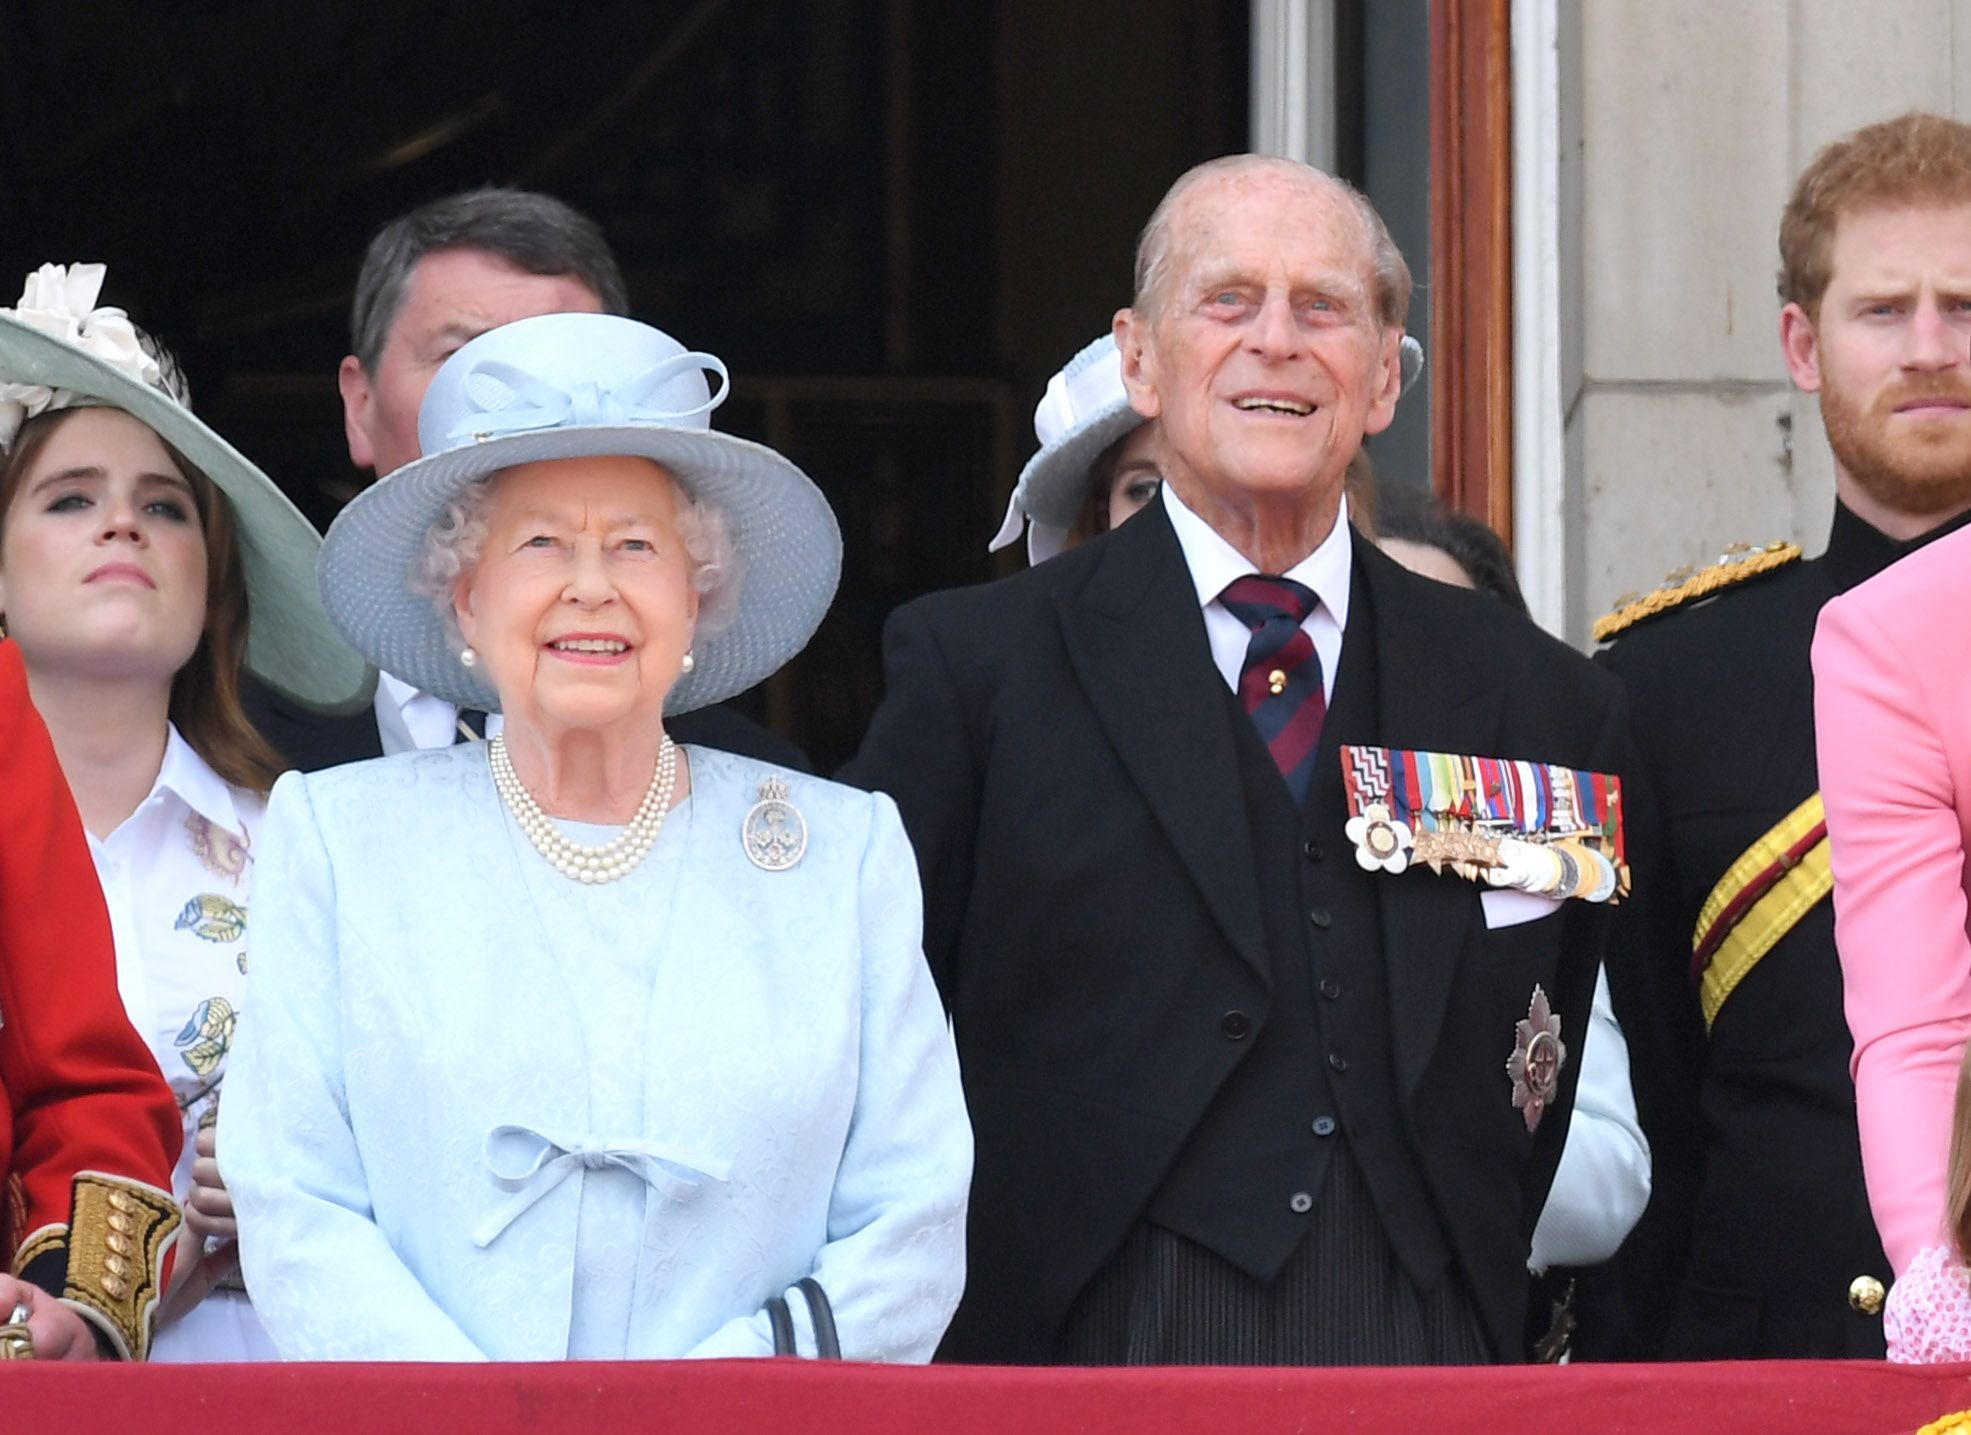 LONDON, ENGLAND - JUNE 17:  Queen Elizabeth II and Prince Philip, Duke of Edinburgh look on from the balcony during the annual Trooping The Colour parade at the Mall on June 17, 2017 in London, England.  (Photo by Karwai Tang/WireImage)